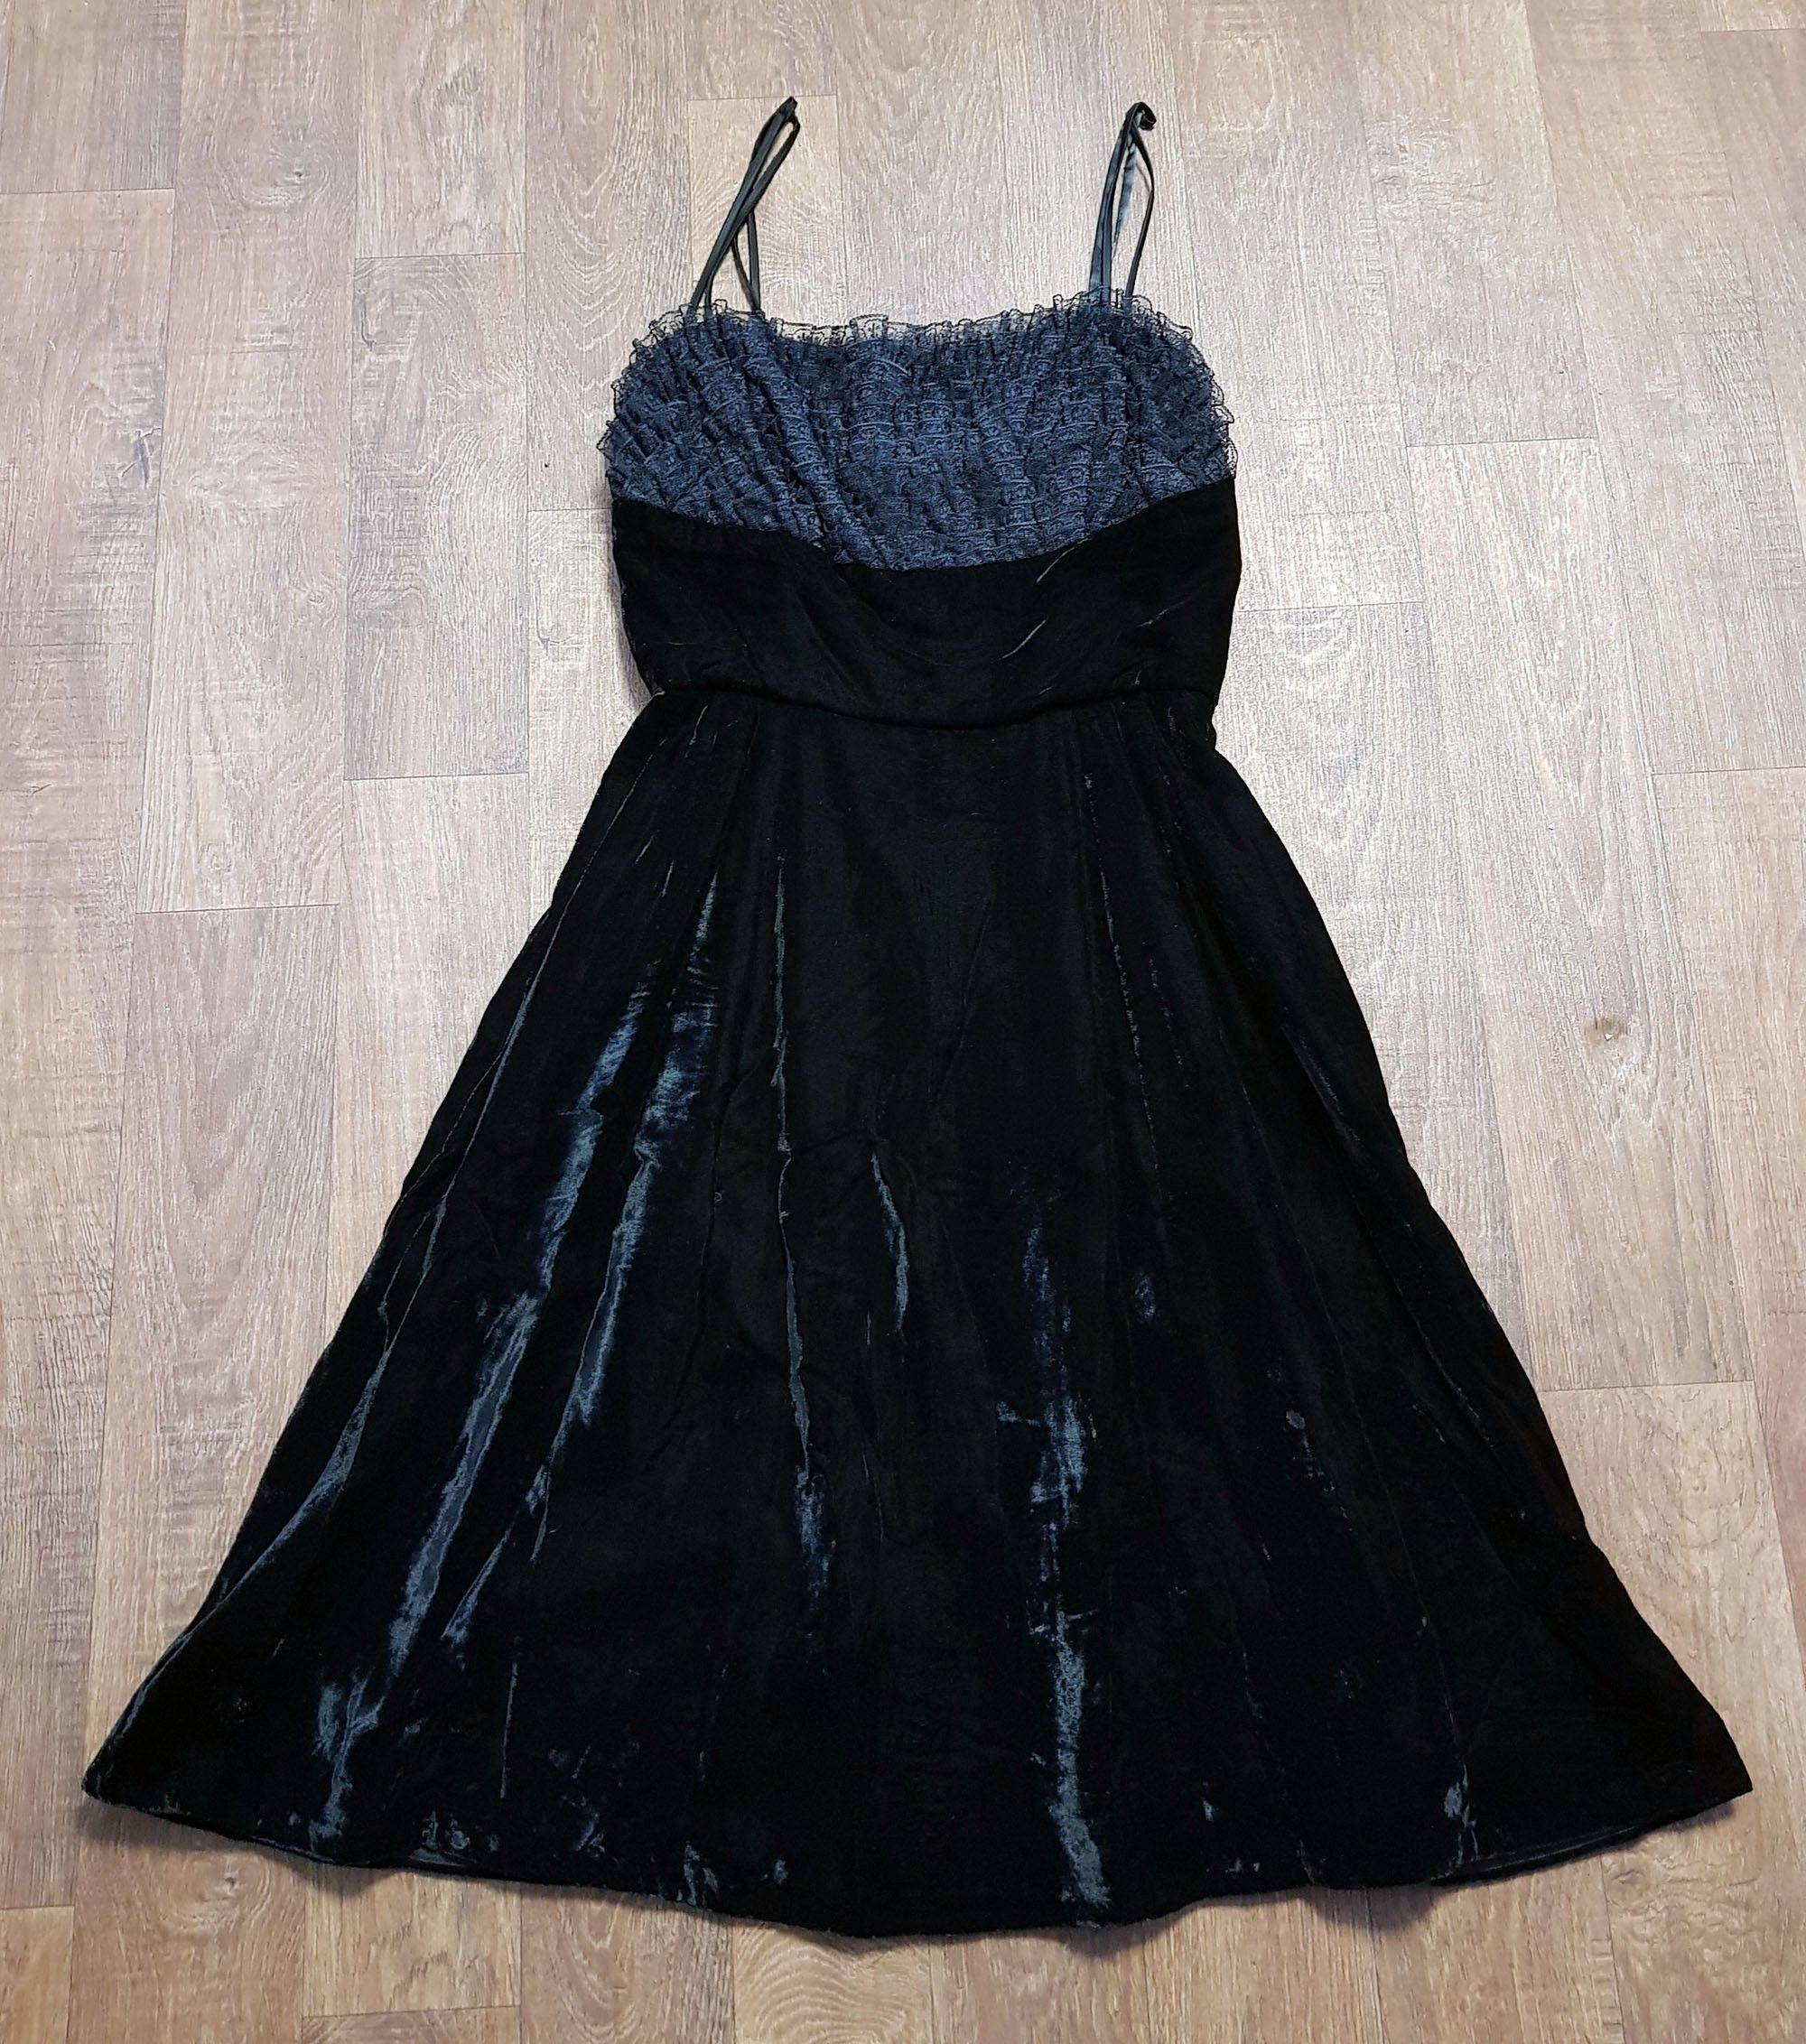 1950s Vintage Black Velvet Swing/Prom Dress UK Size 12